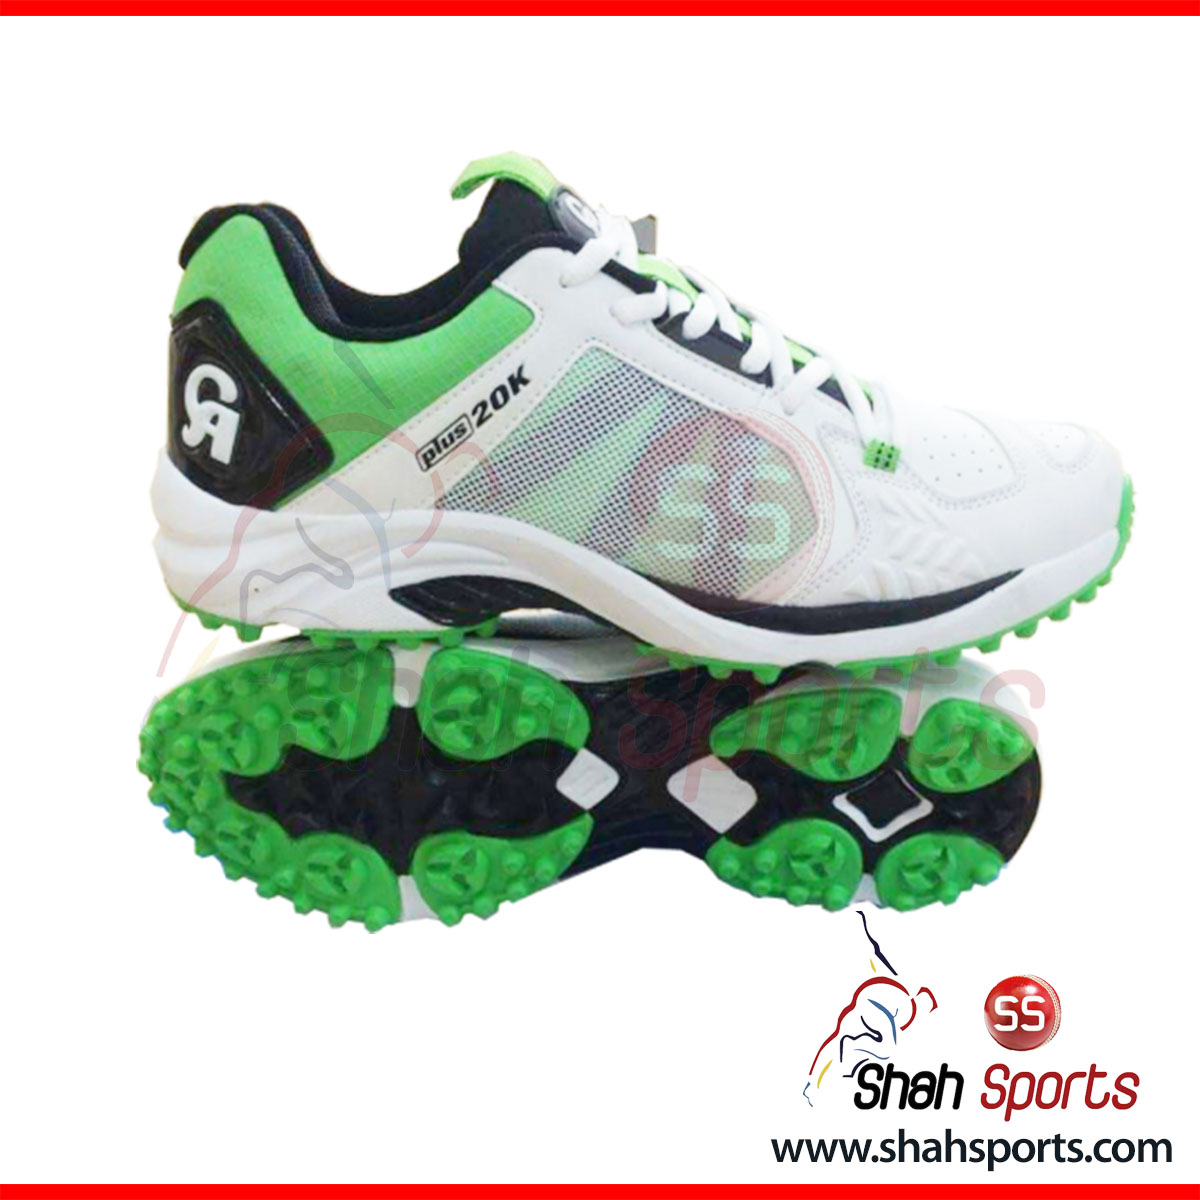 Cricket Sport Shoes Price